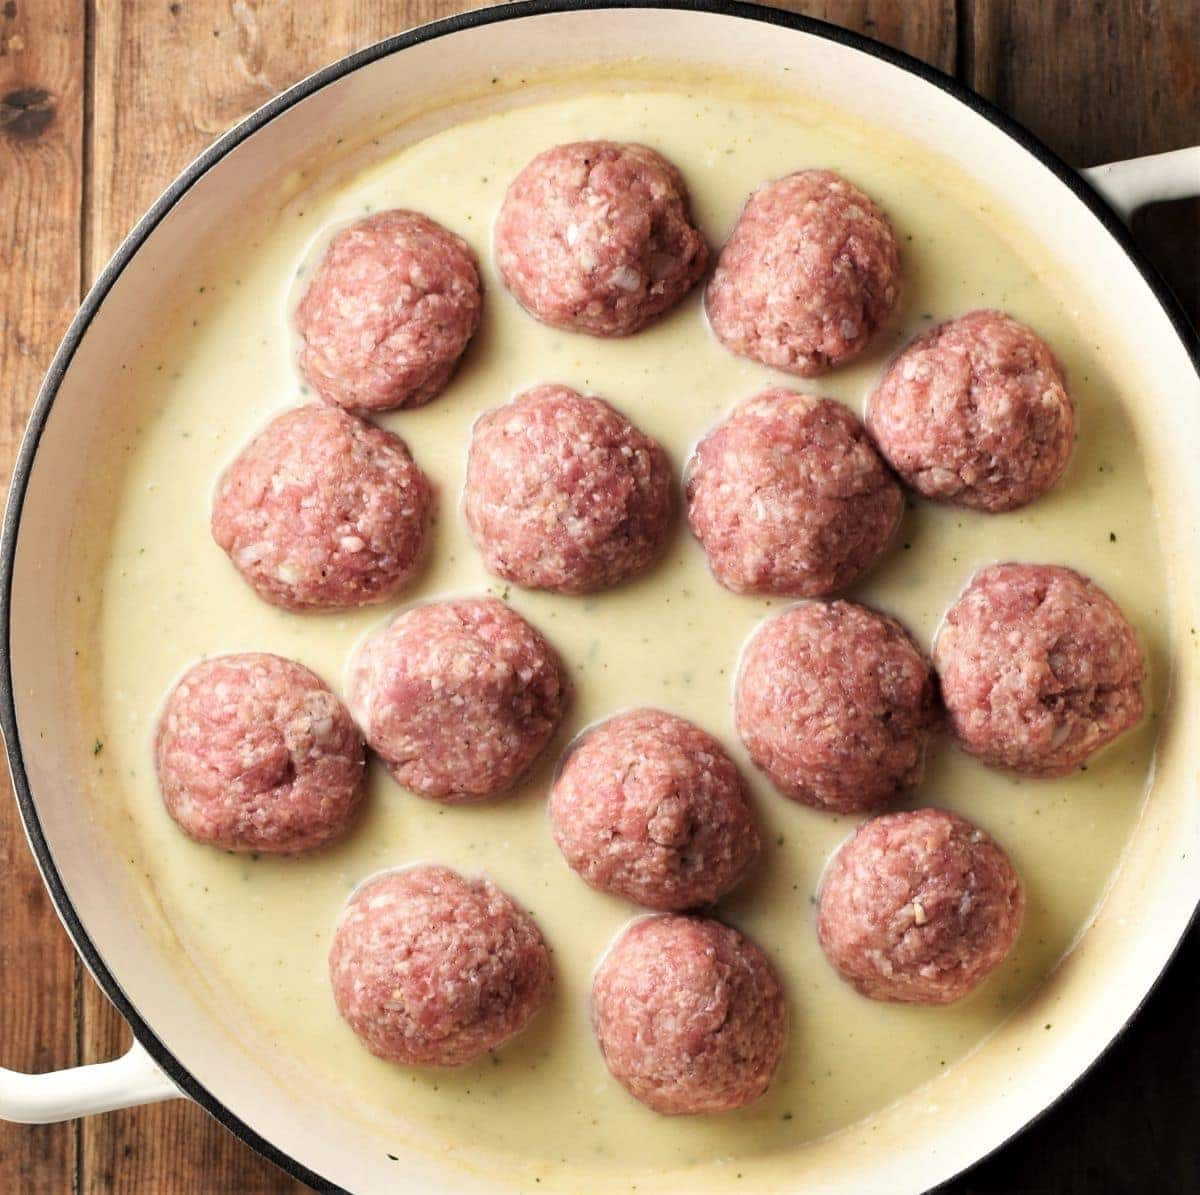 Raw meatballs in white sauce in large shallow pan.